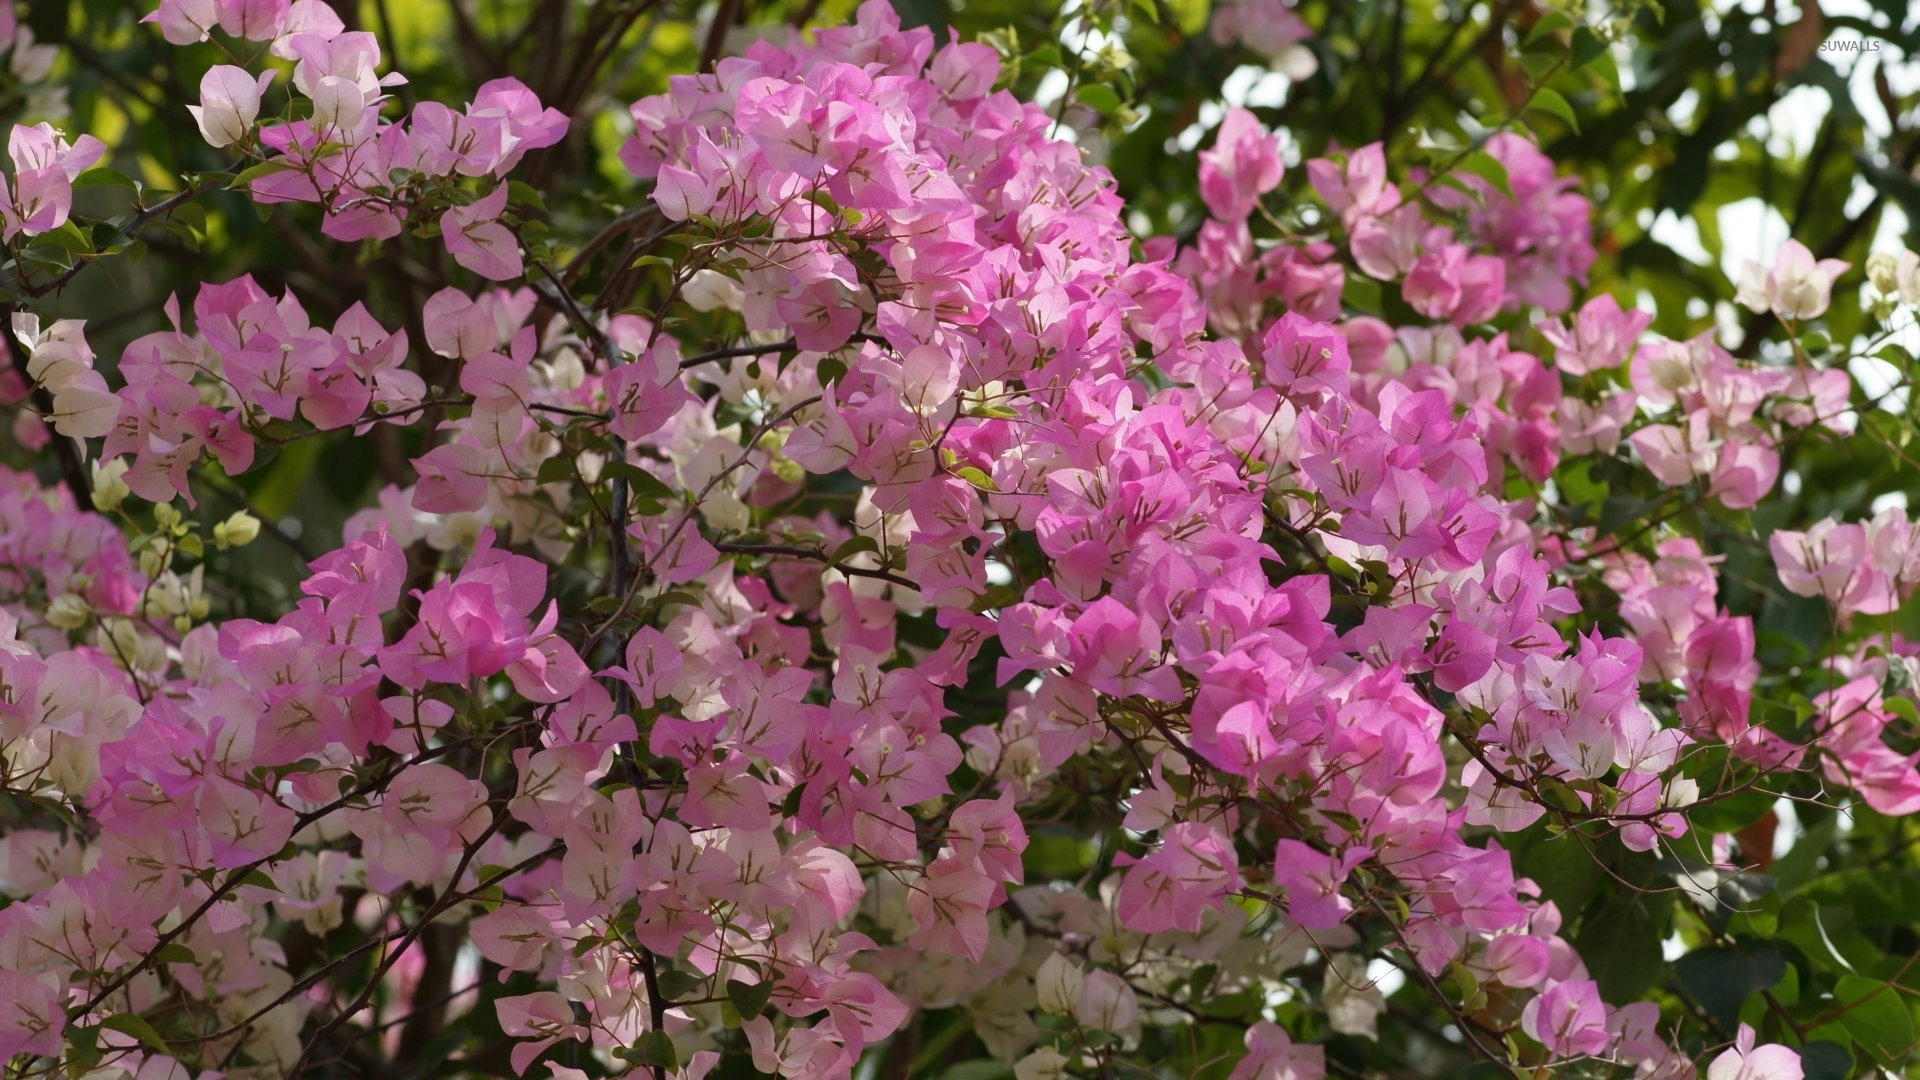 Bougainvillea Wallpaper Pink Bougainvillea Bush Wallpaper Flower Wallpapers 51613